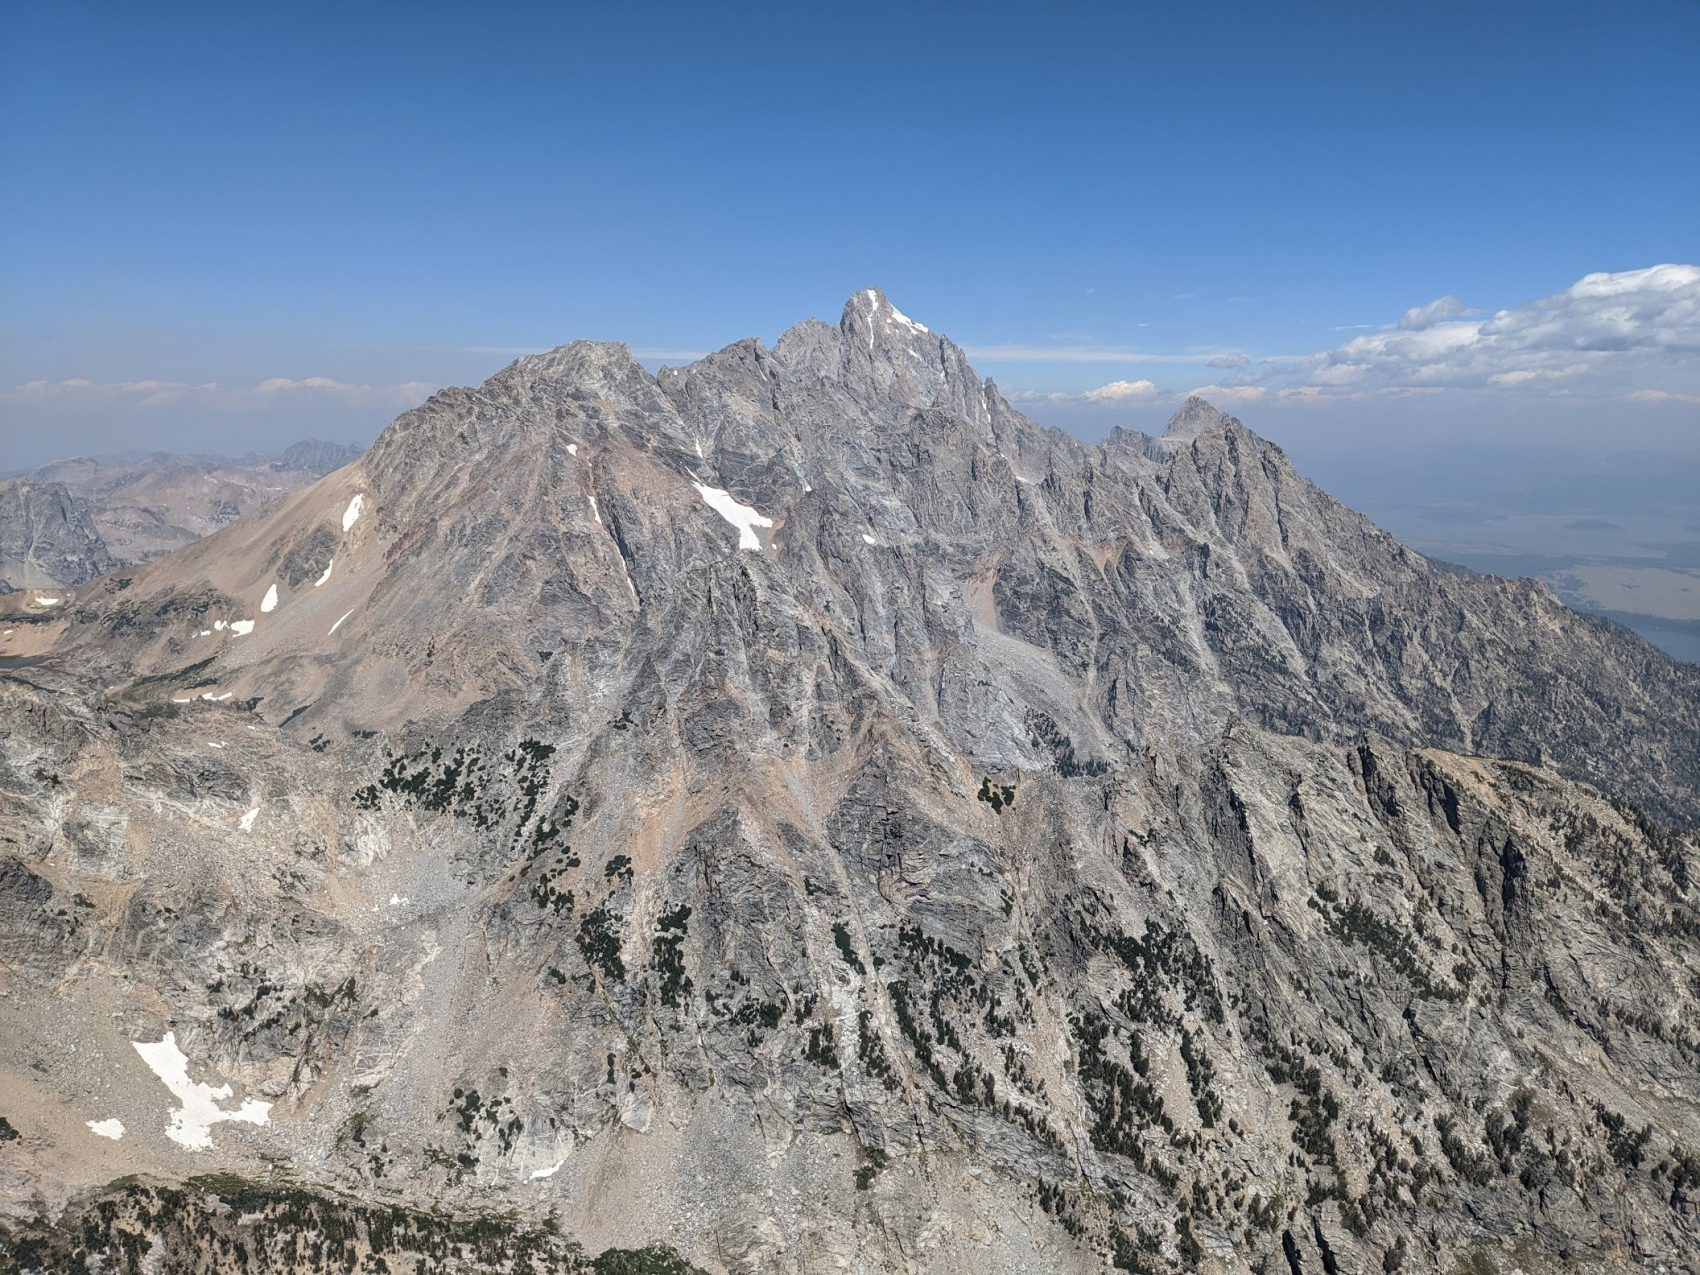 The Grand Teton from the summit of Buck Mountain